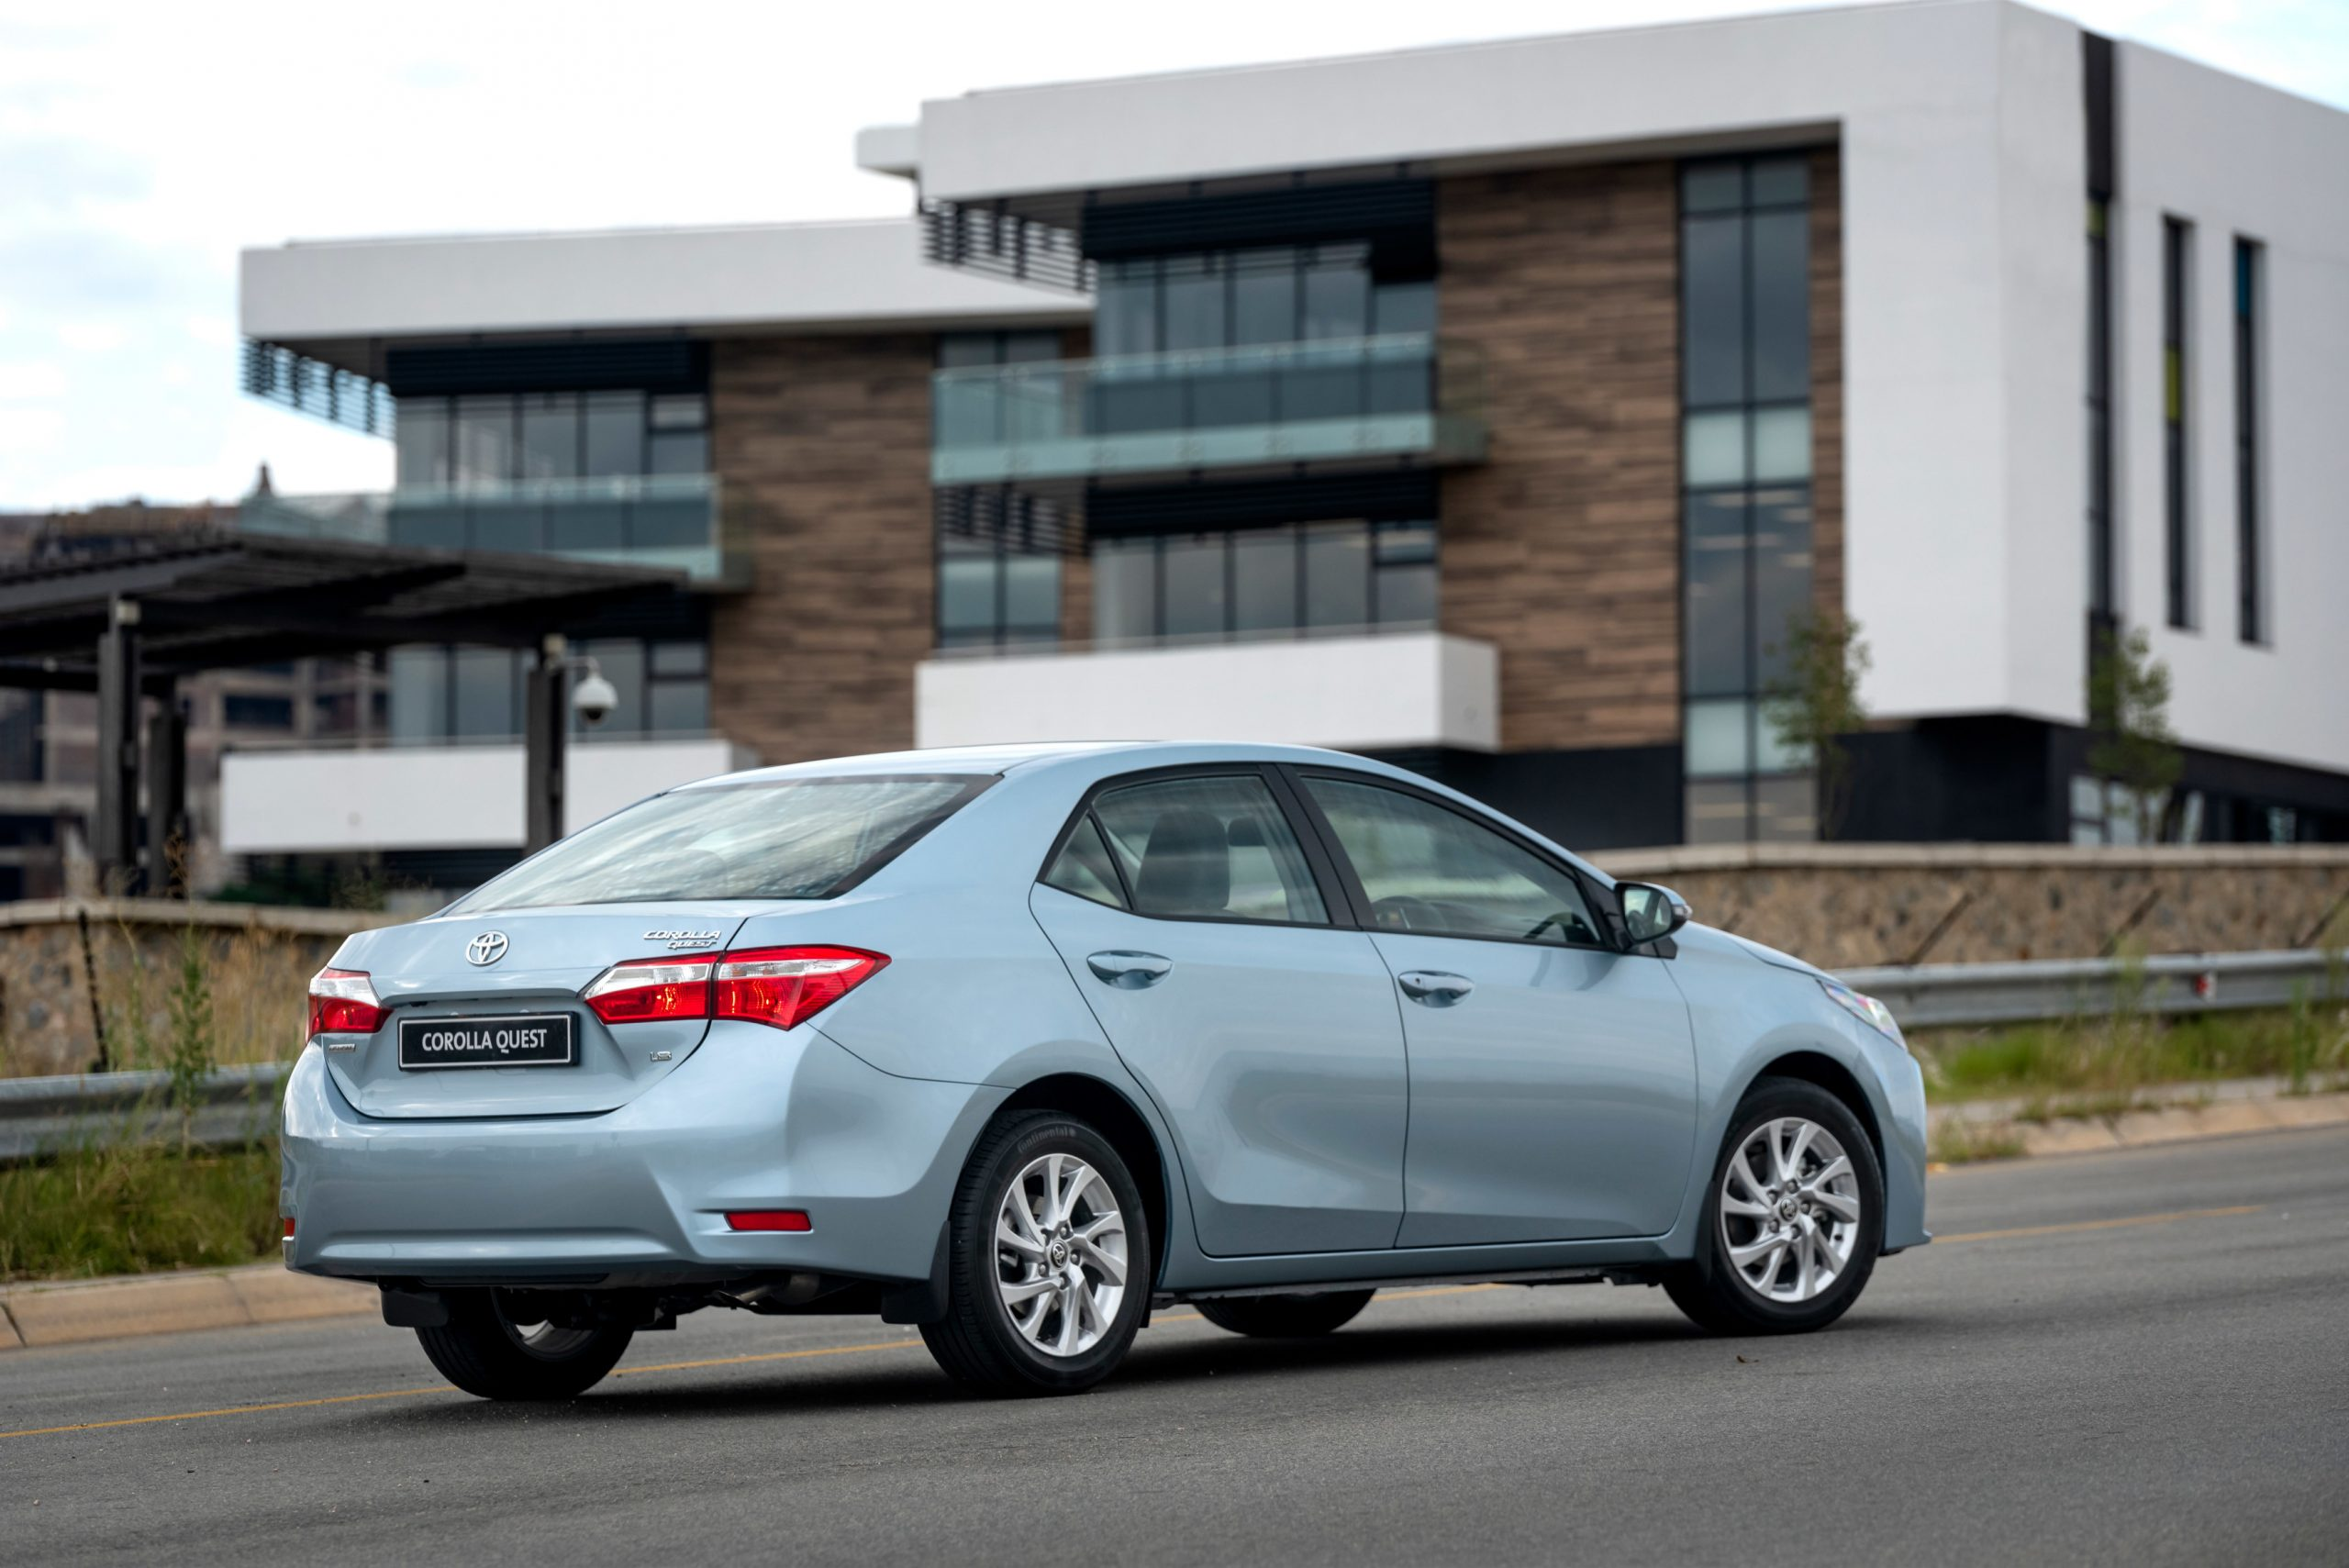 Toyota Corolla Quest | South African built | motoring